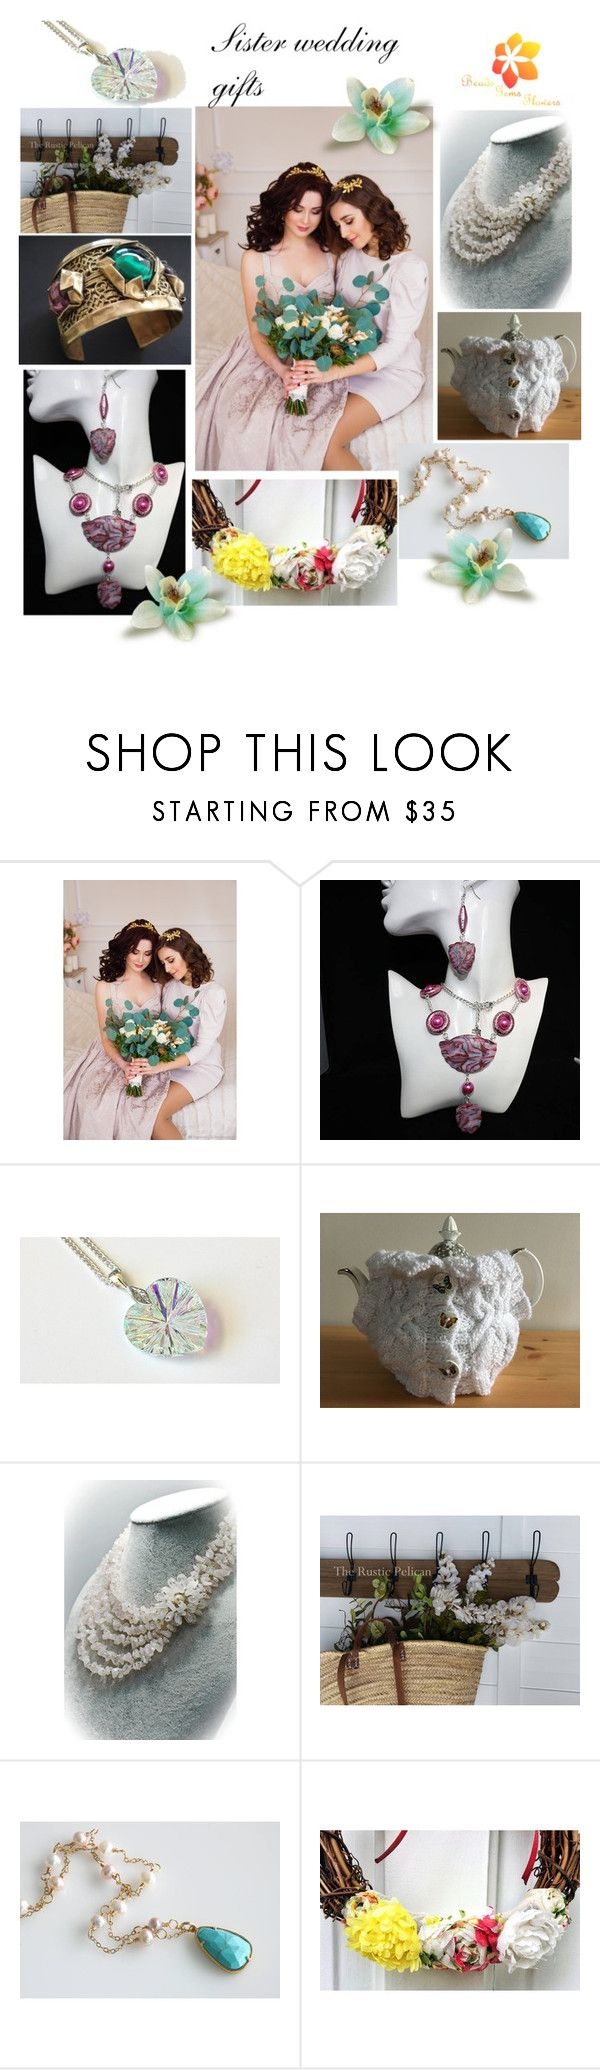 """Sister wedding gifts"" by varivodamar ❤ liked on Polyvore featuring modern"